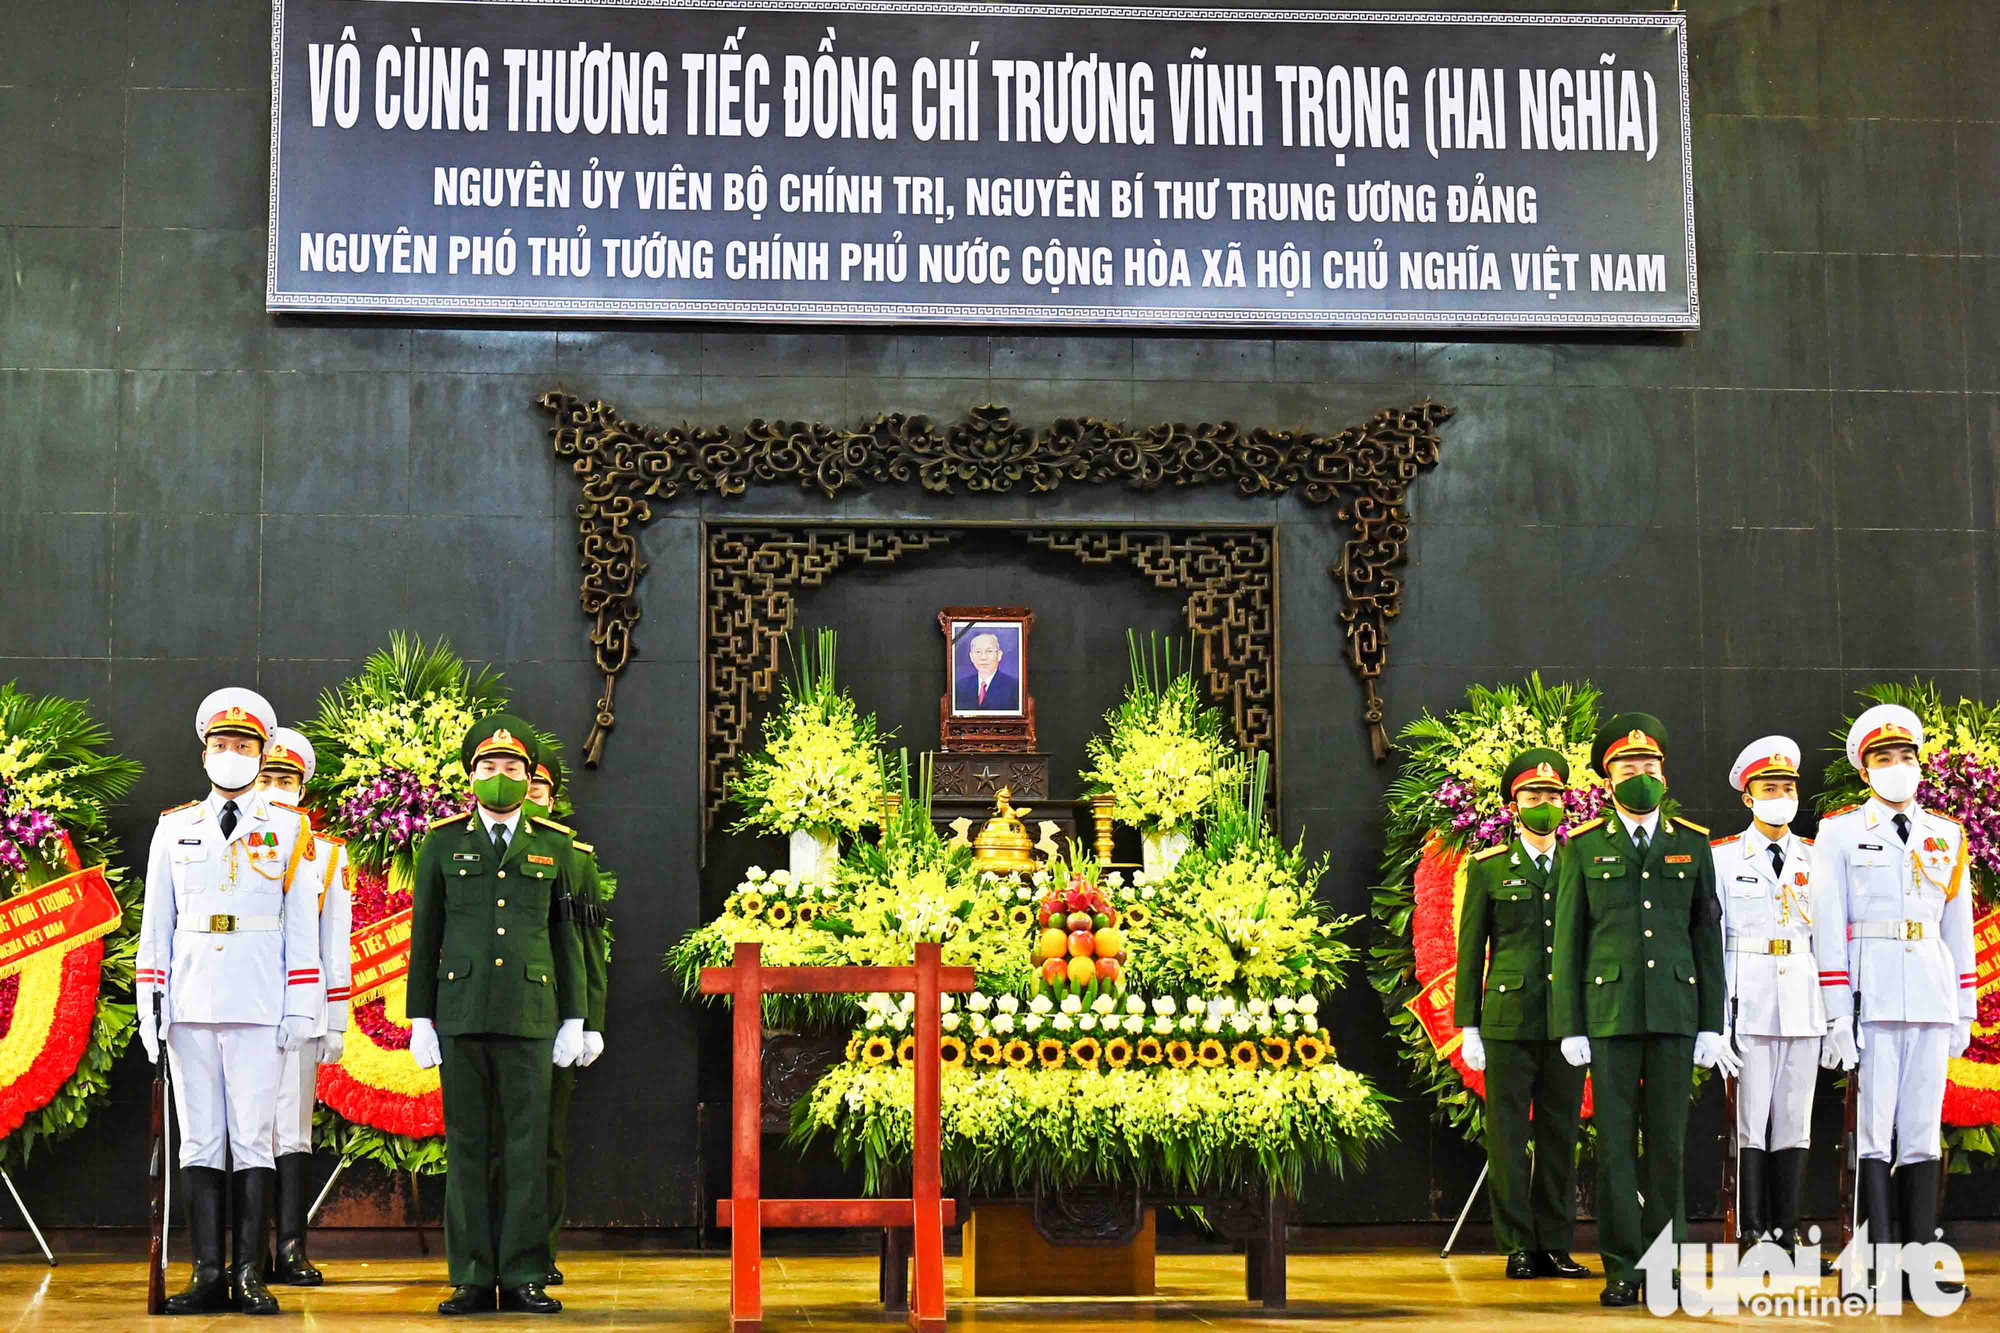 The funeral of former Vietnamese Deputy Prime Minister Truong Vinh Trong is organized in Hanoi, February 21, 2021. Photo: Hoang Phong / Tuoi Tre